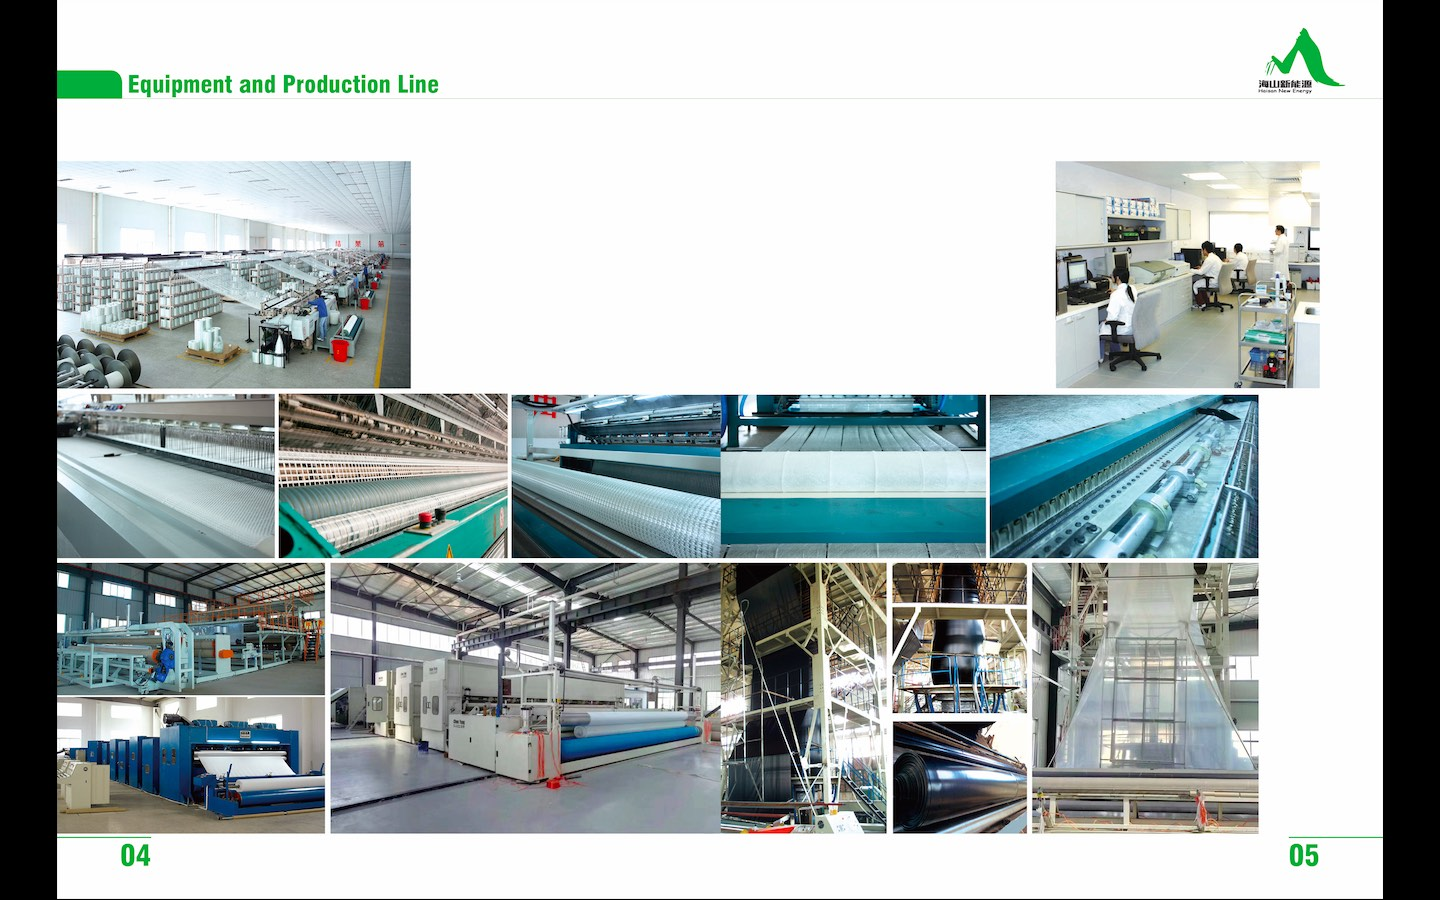 Equipment and Production Line